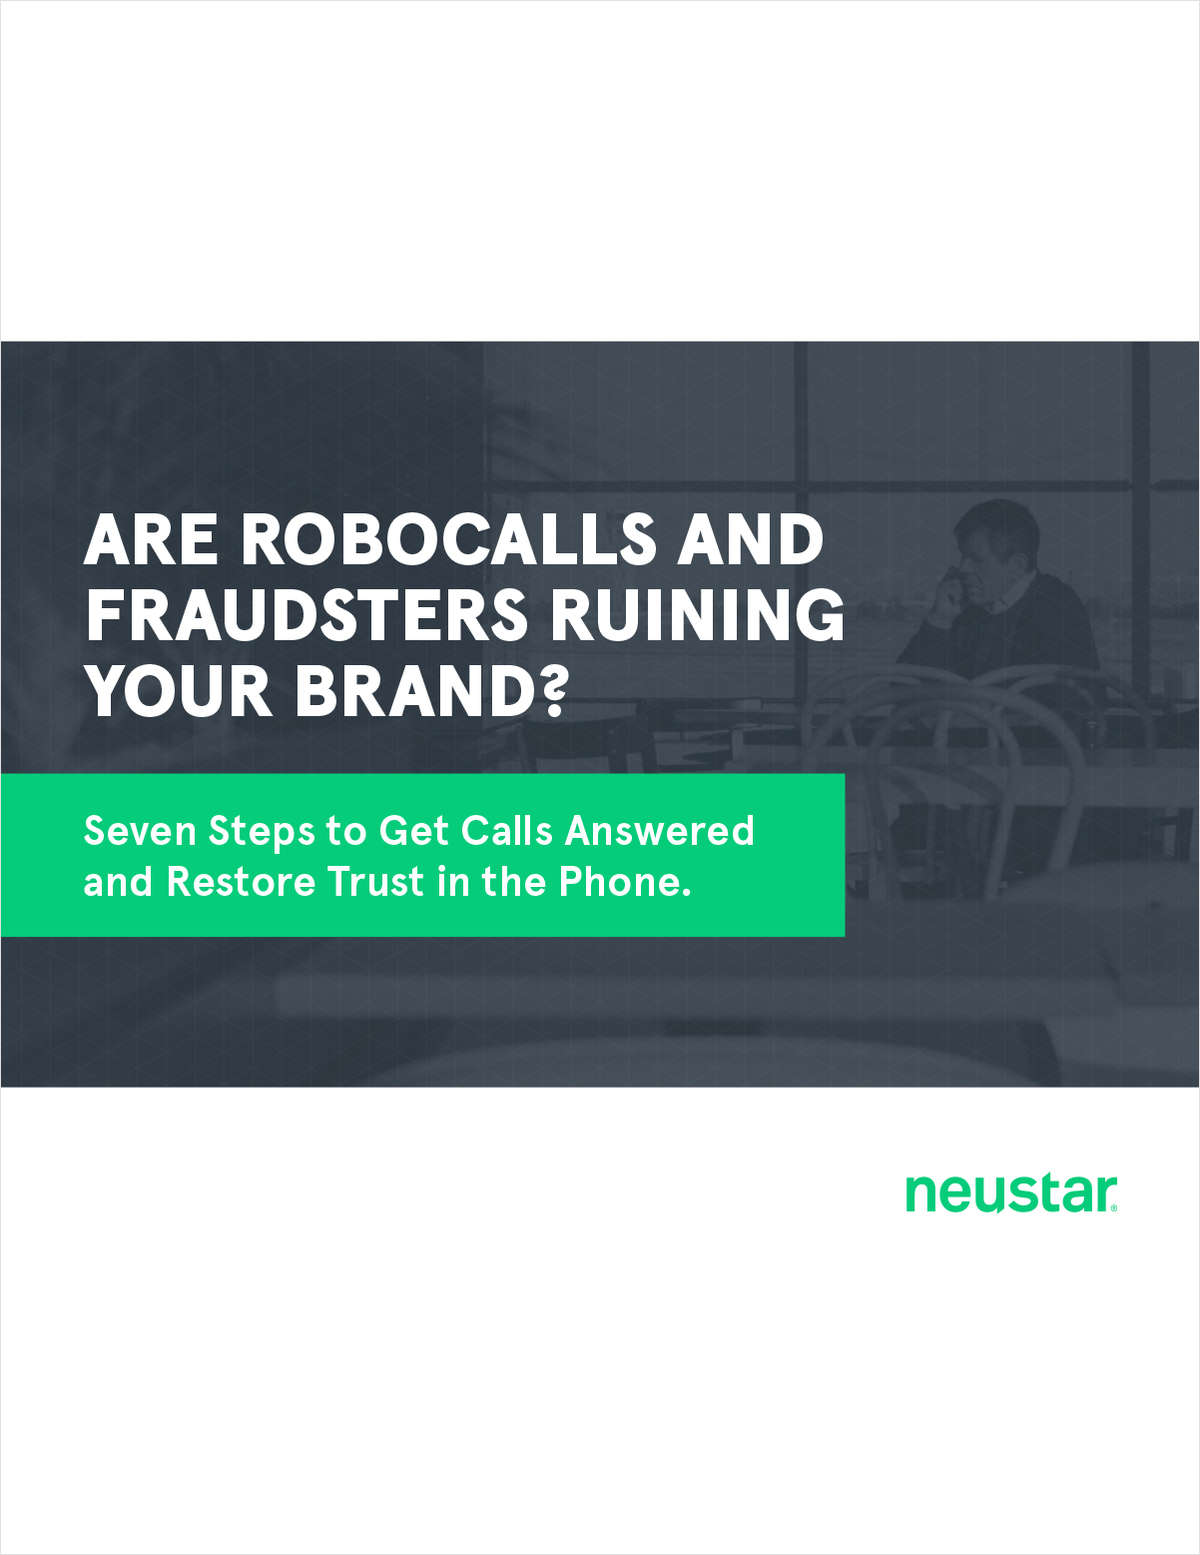 Seven Steps to Get Calls Answered and Restore Trust in the Phone